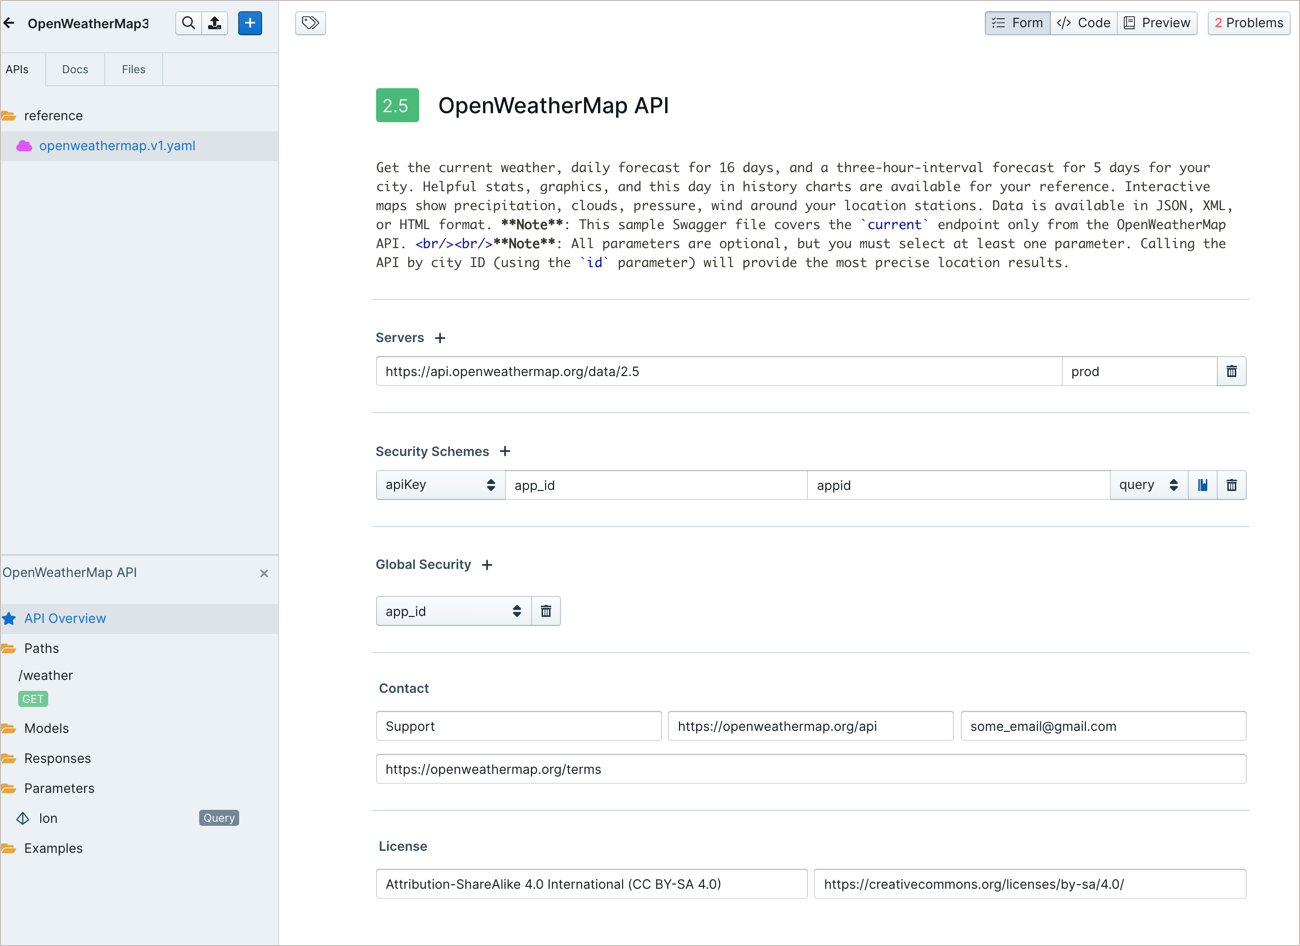 Populating Stoplight info in API Overview section